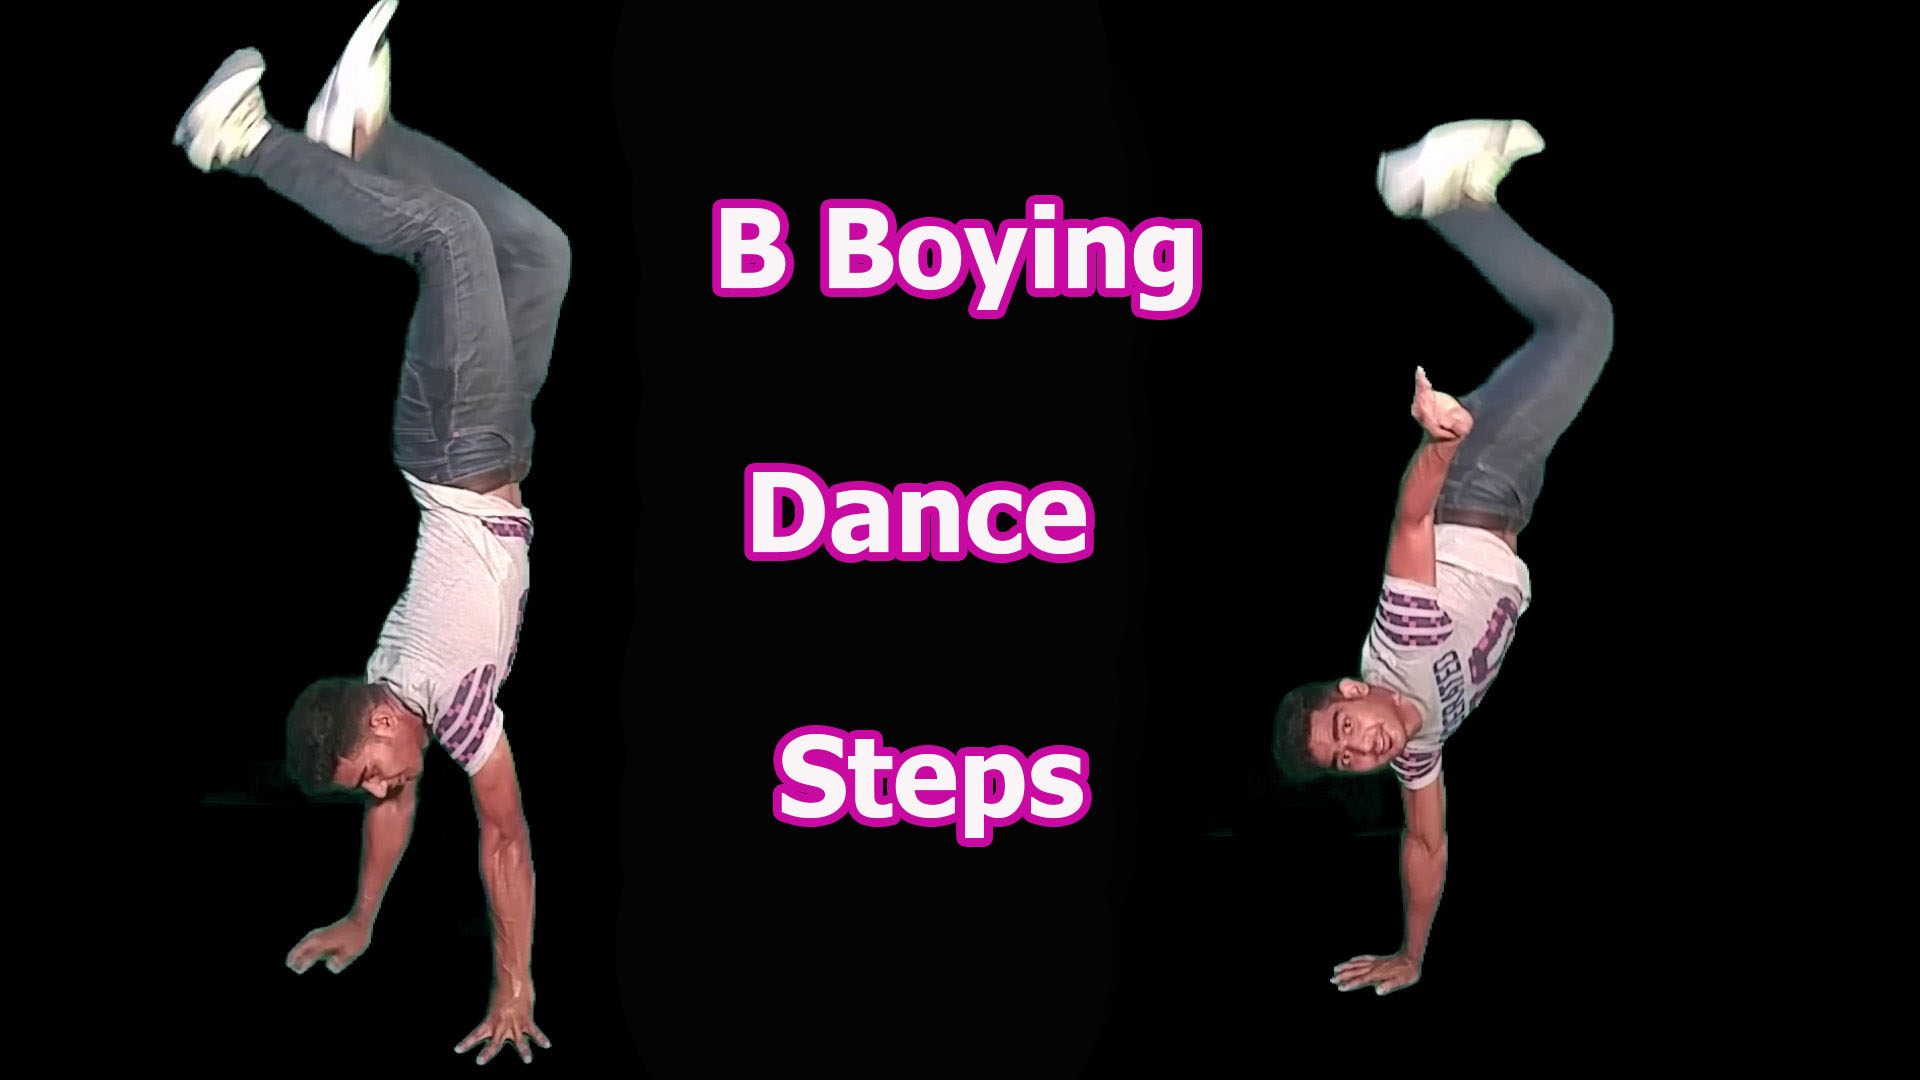 B-Boying Dance Steps